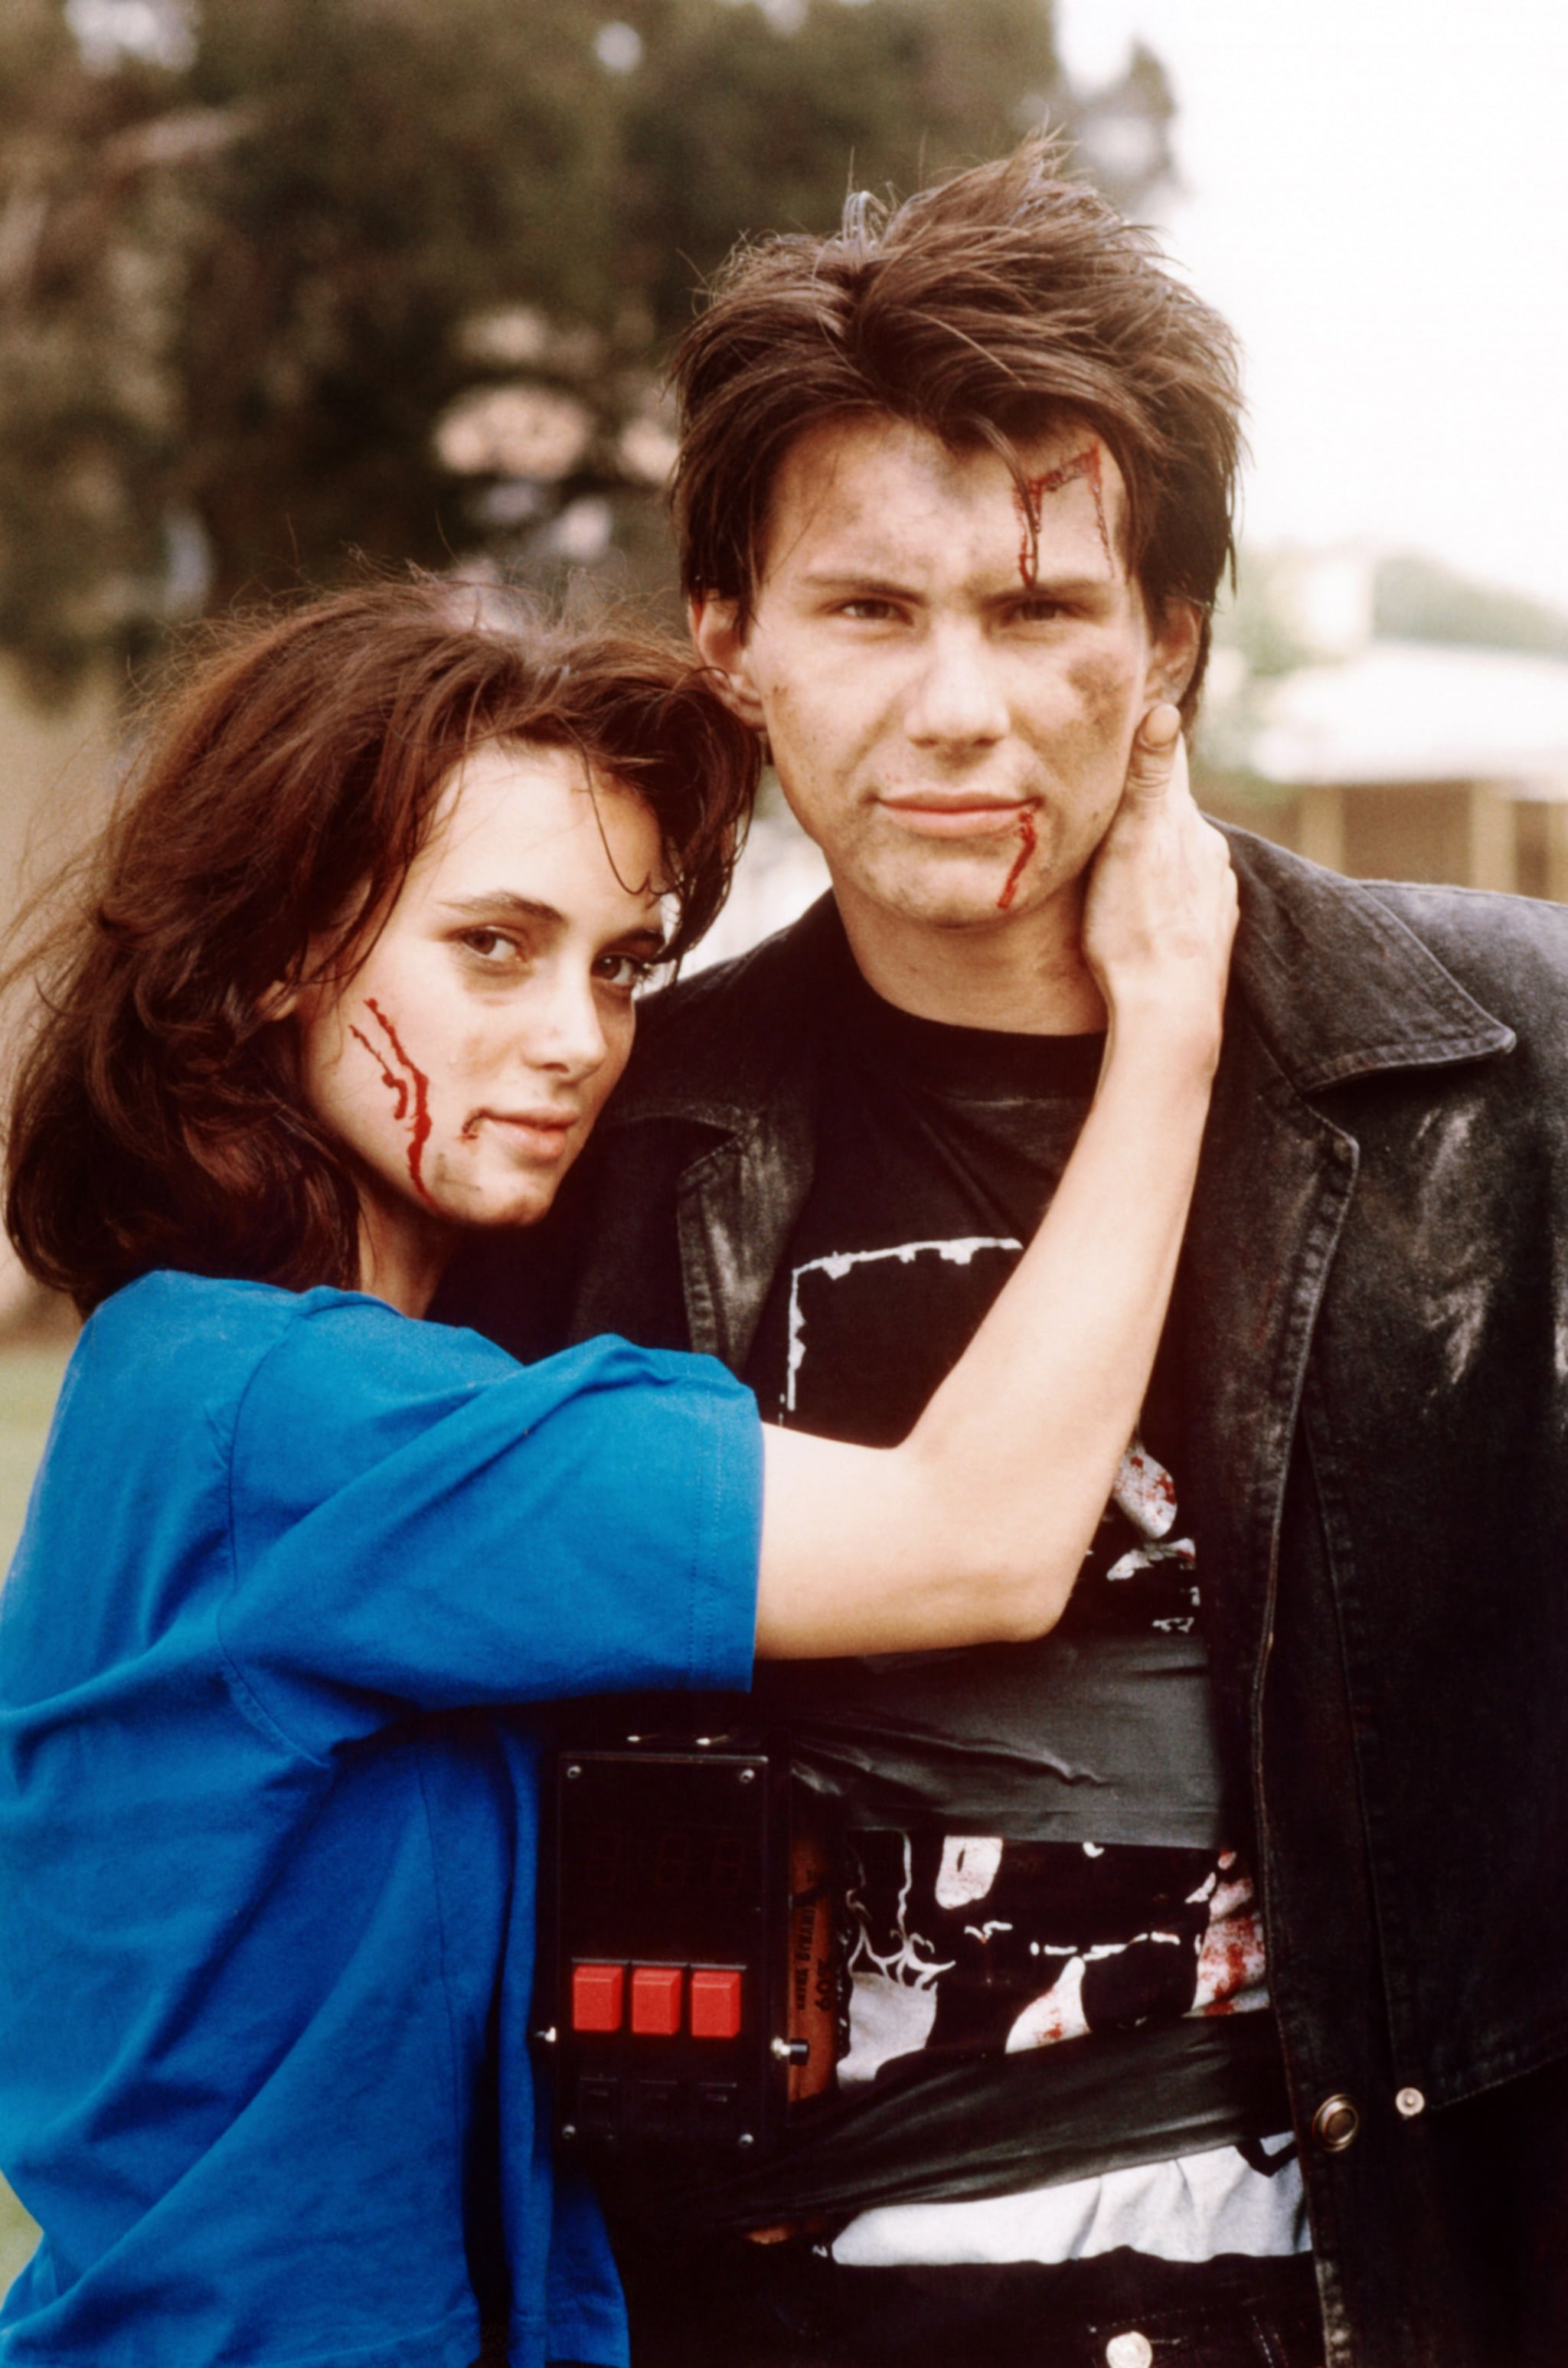 9 1 20 Of The Best Anti-Valentine's Day Films For All The Cynics Out There